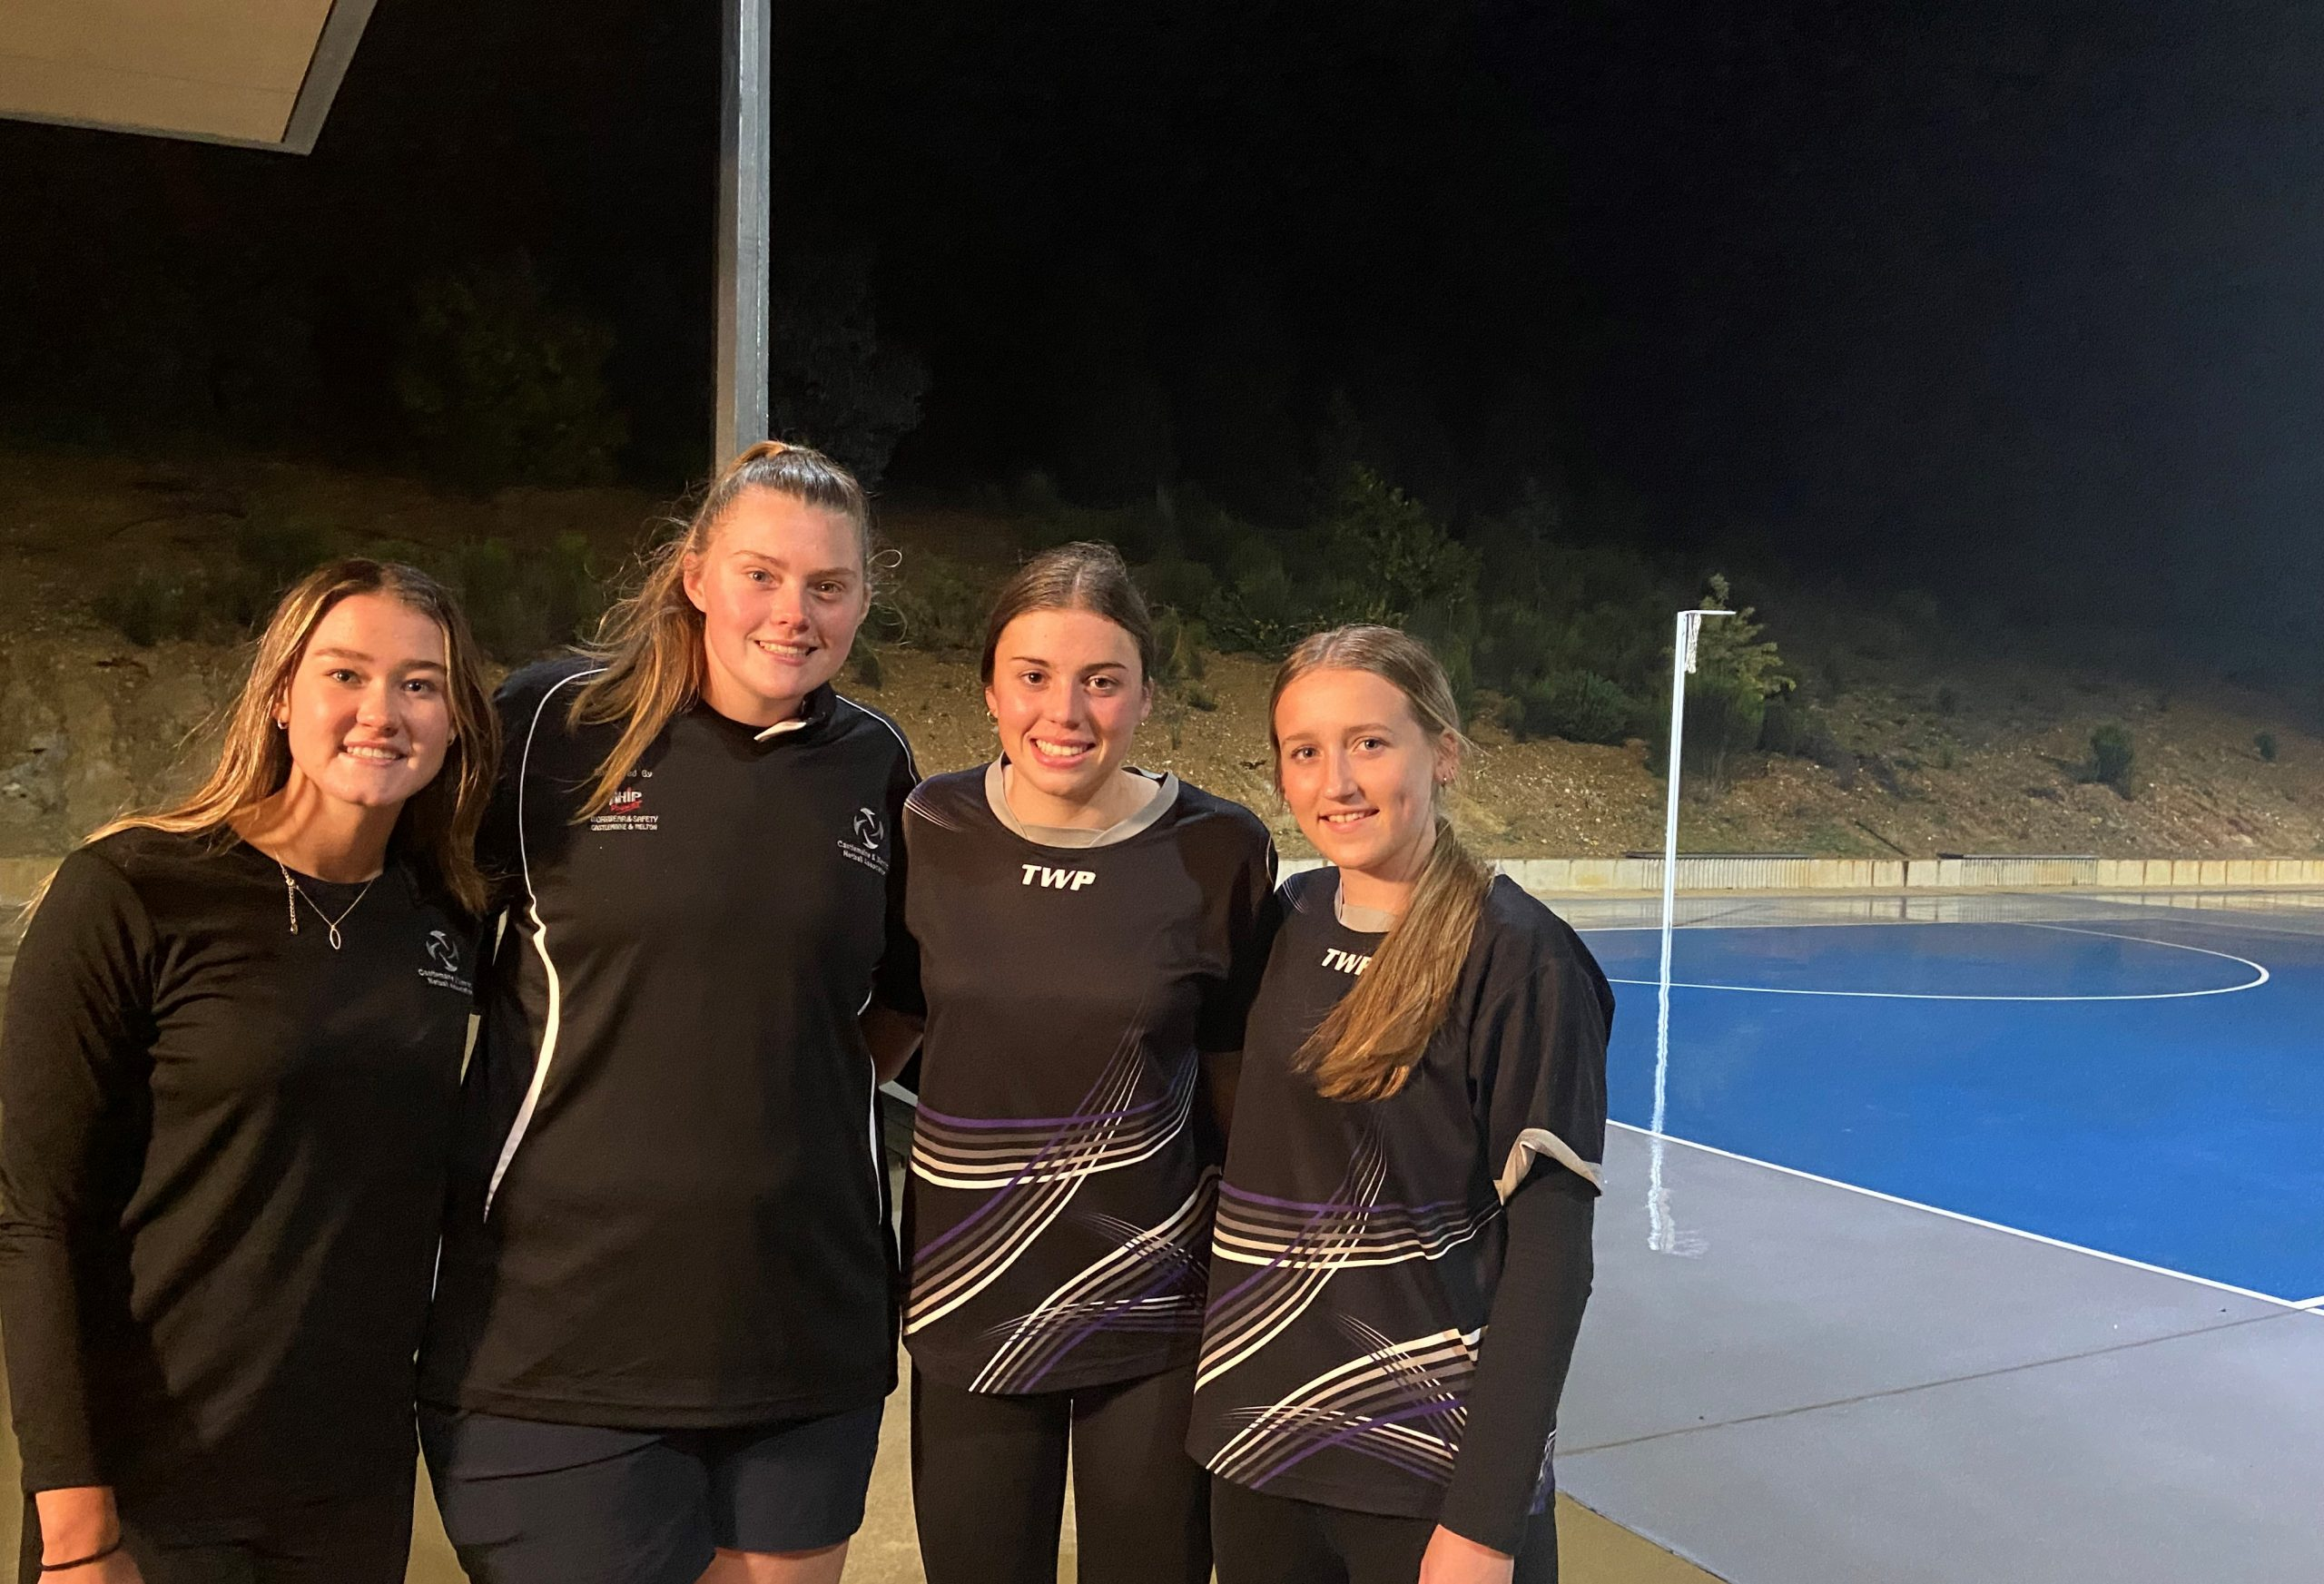 CDNA development squad members Shae Clifford, Eliza Oxley, Megan Wilson and Paige Langley have been selected to represent the North Central region at the state titles.